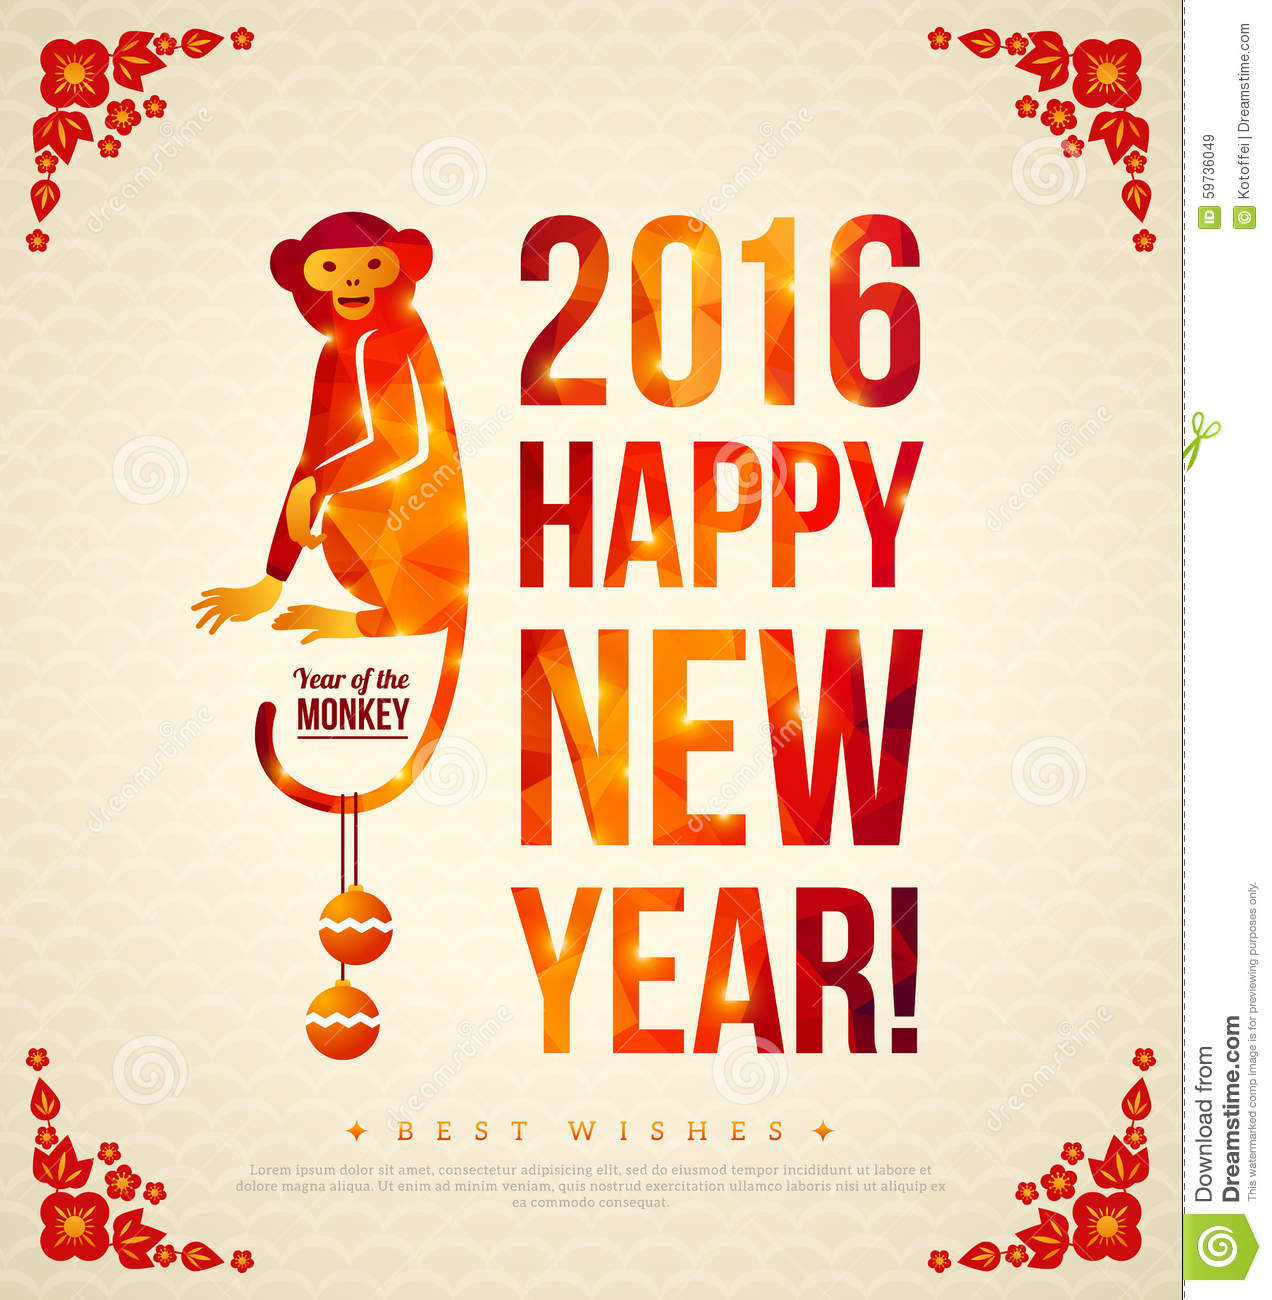 happy chinese new year 2016 greeting card with - When Is Chinese New Year 2016